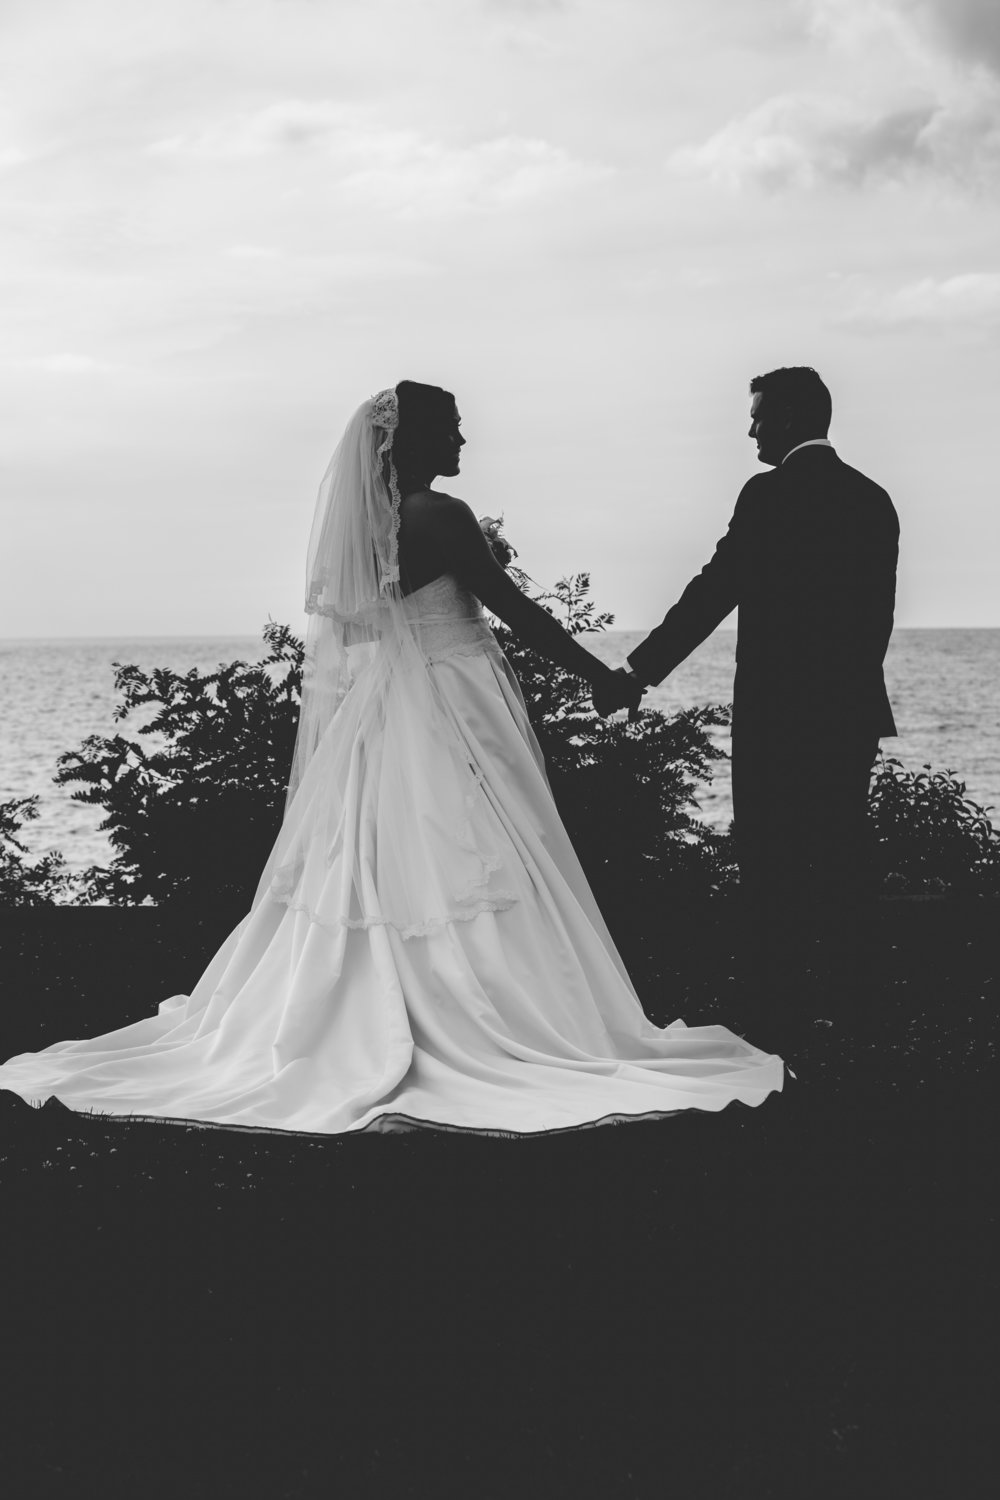 Black and white wedding silhouette photo.